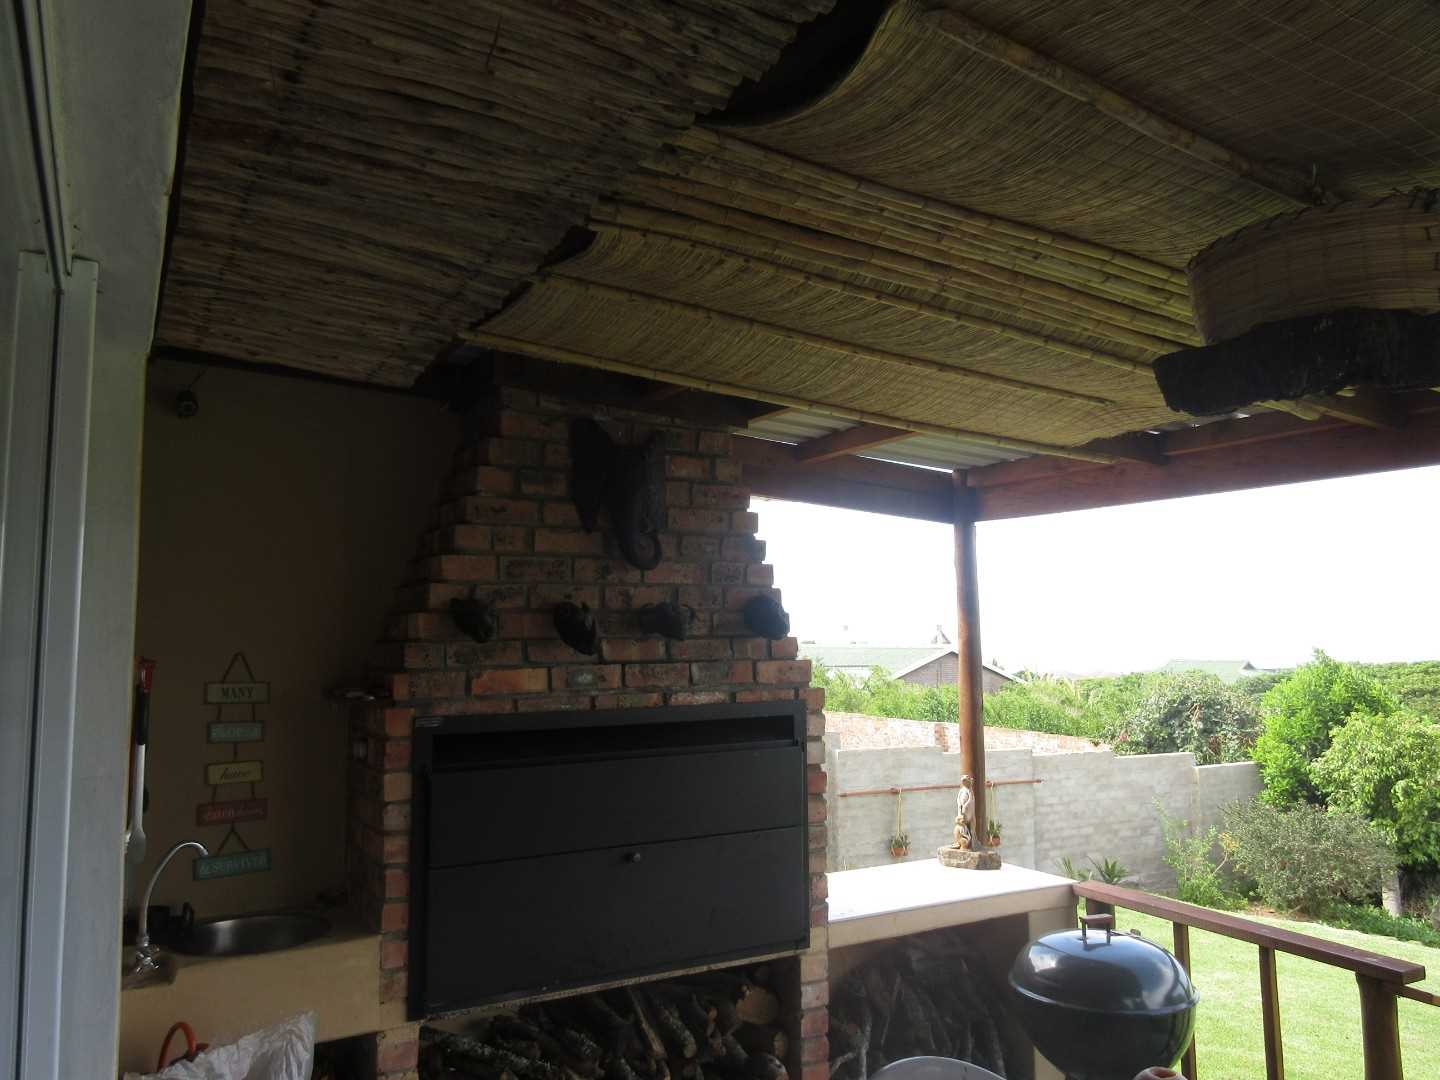 Covered entertainment area with built-in braai